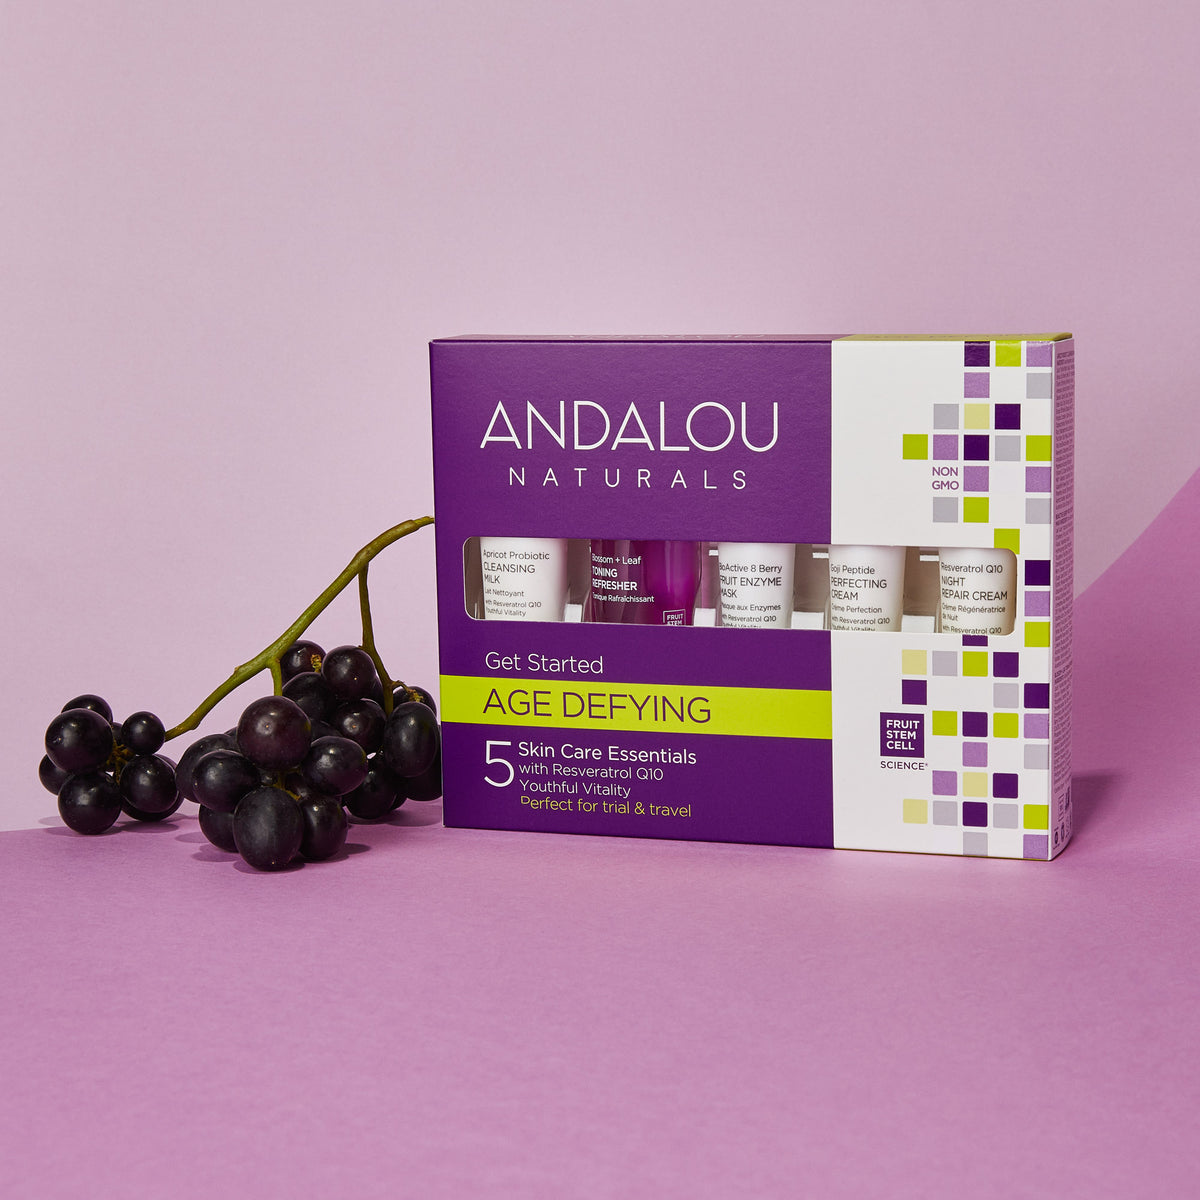 Age Defying Get Started Kit packaging with concord grapes